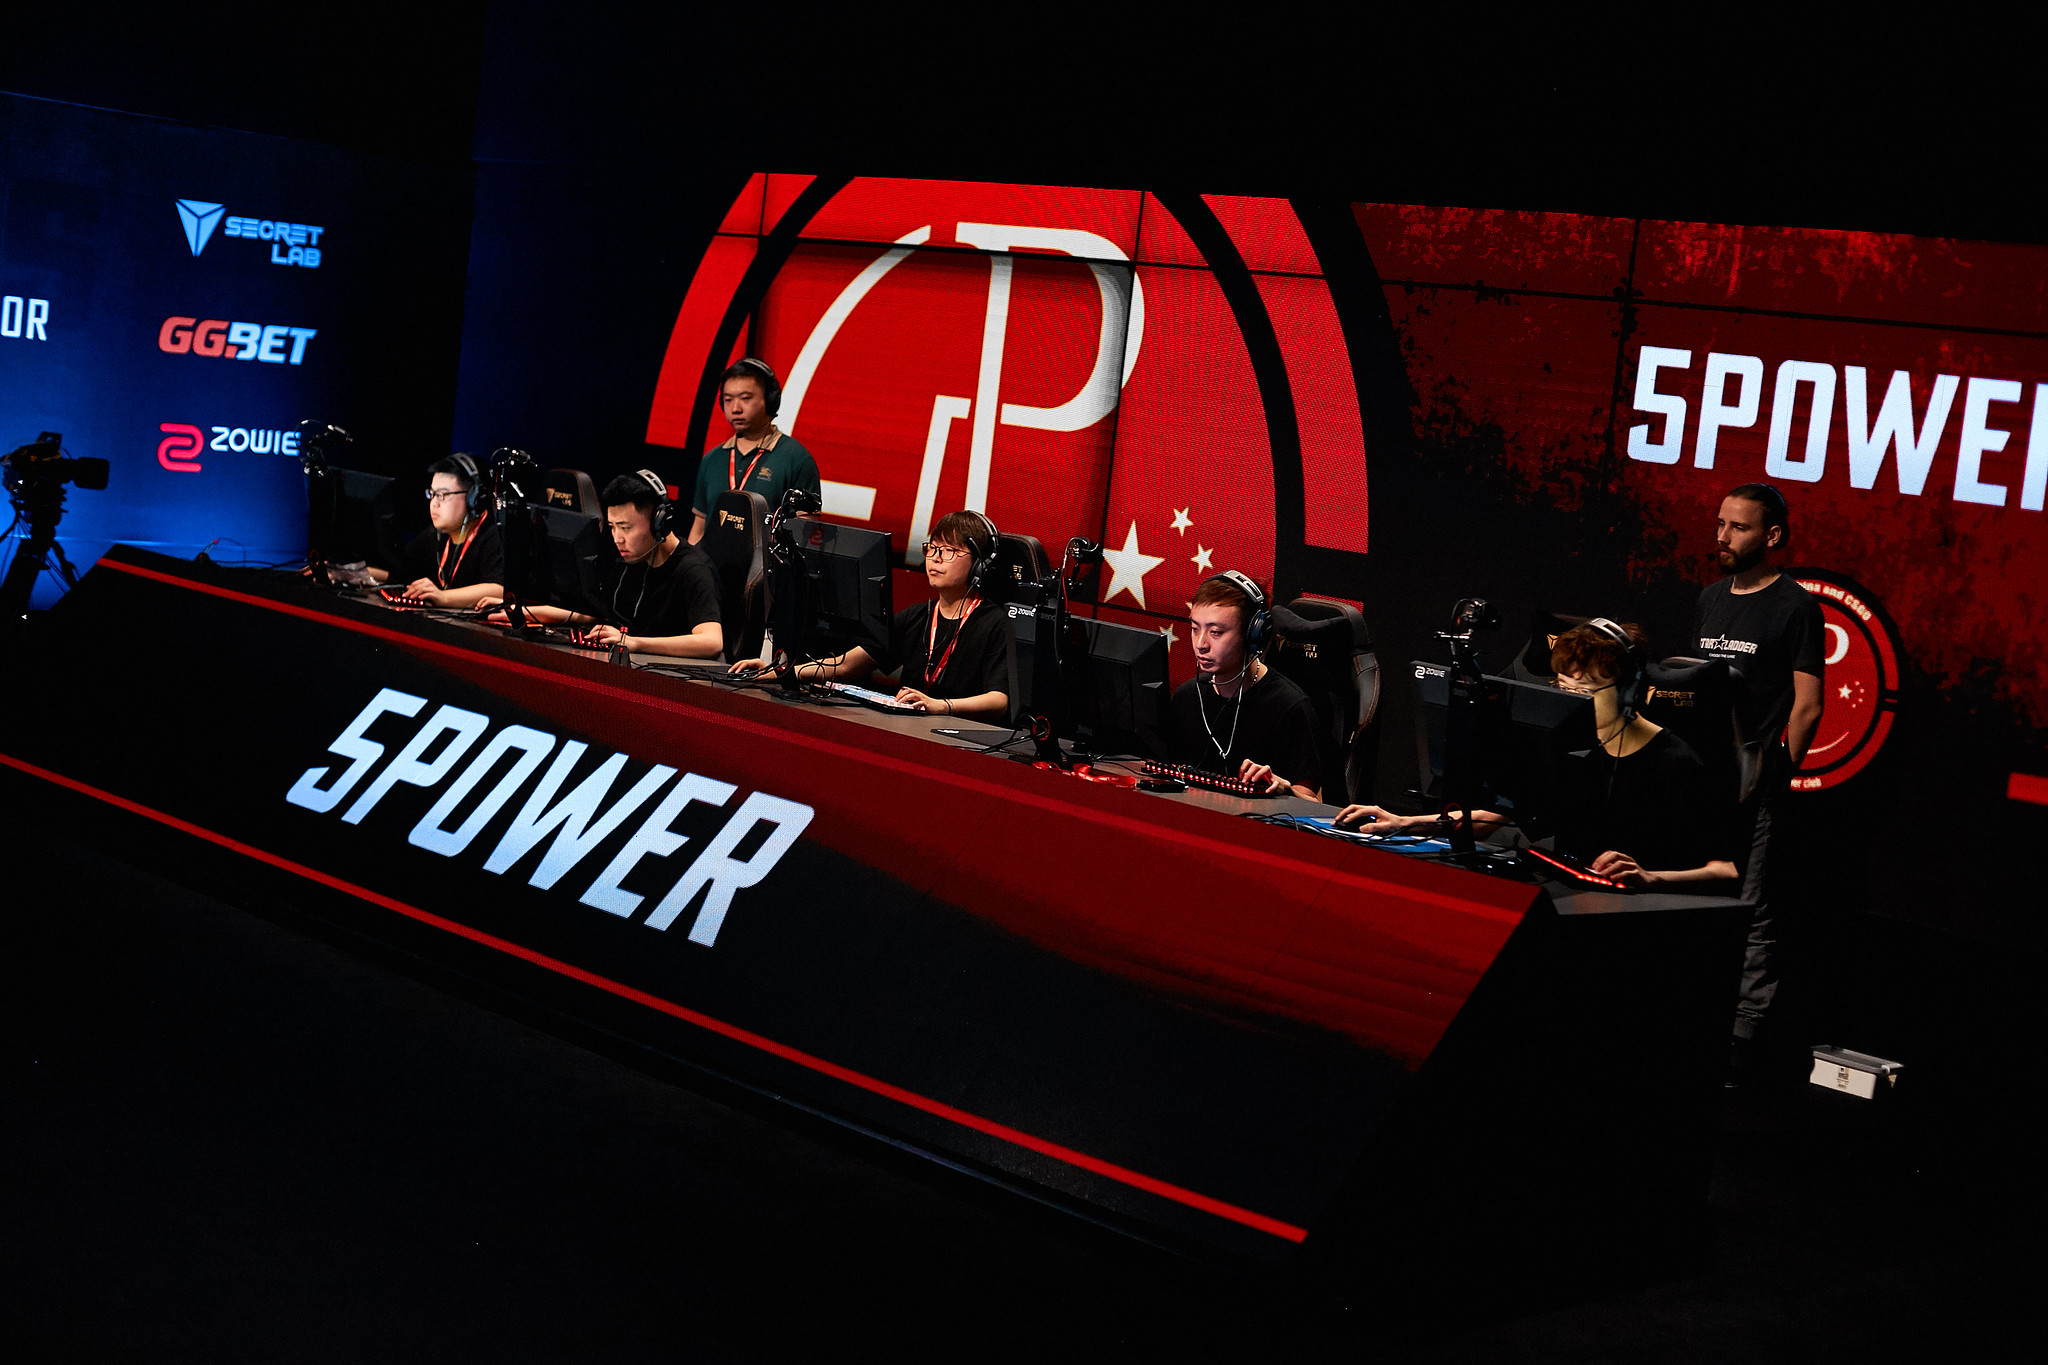 5POWER CS:GO